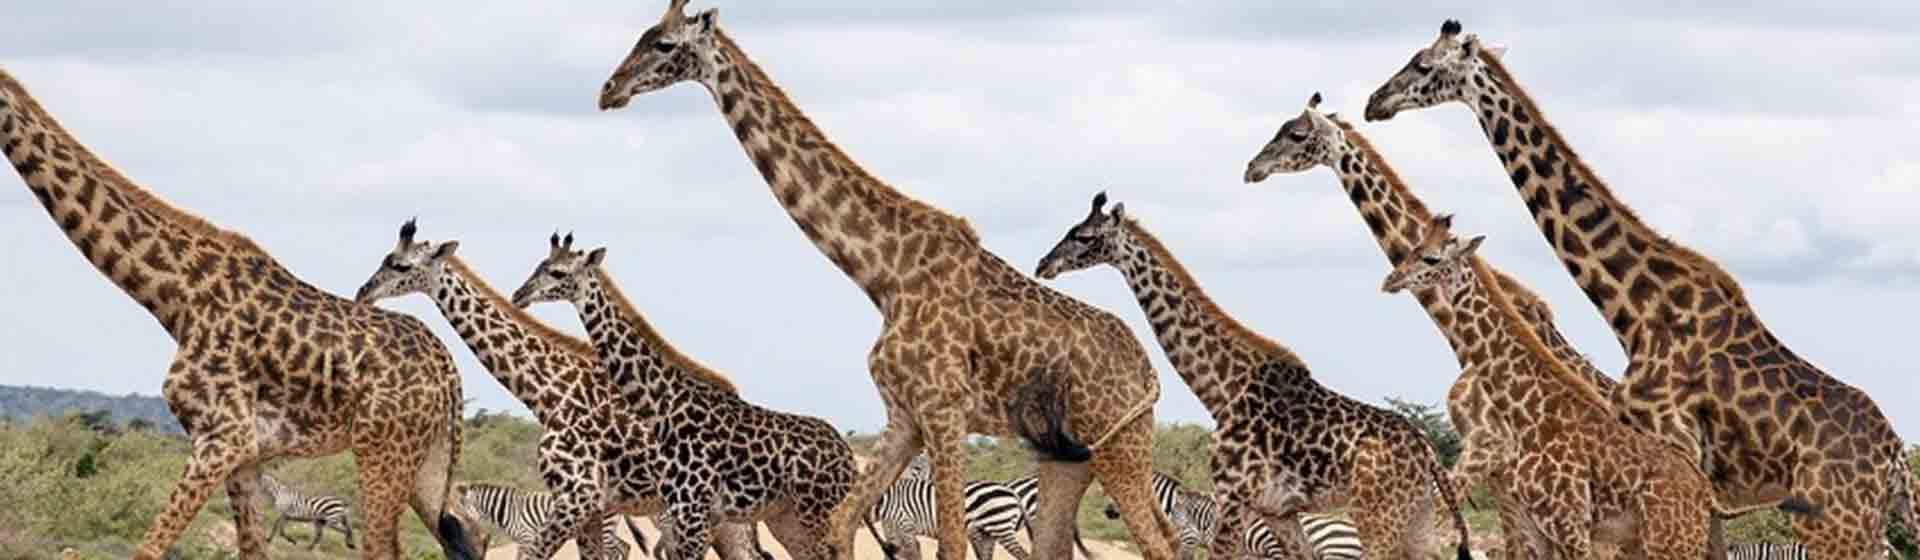 Best of Kenya Wildlife photography safari